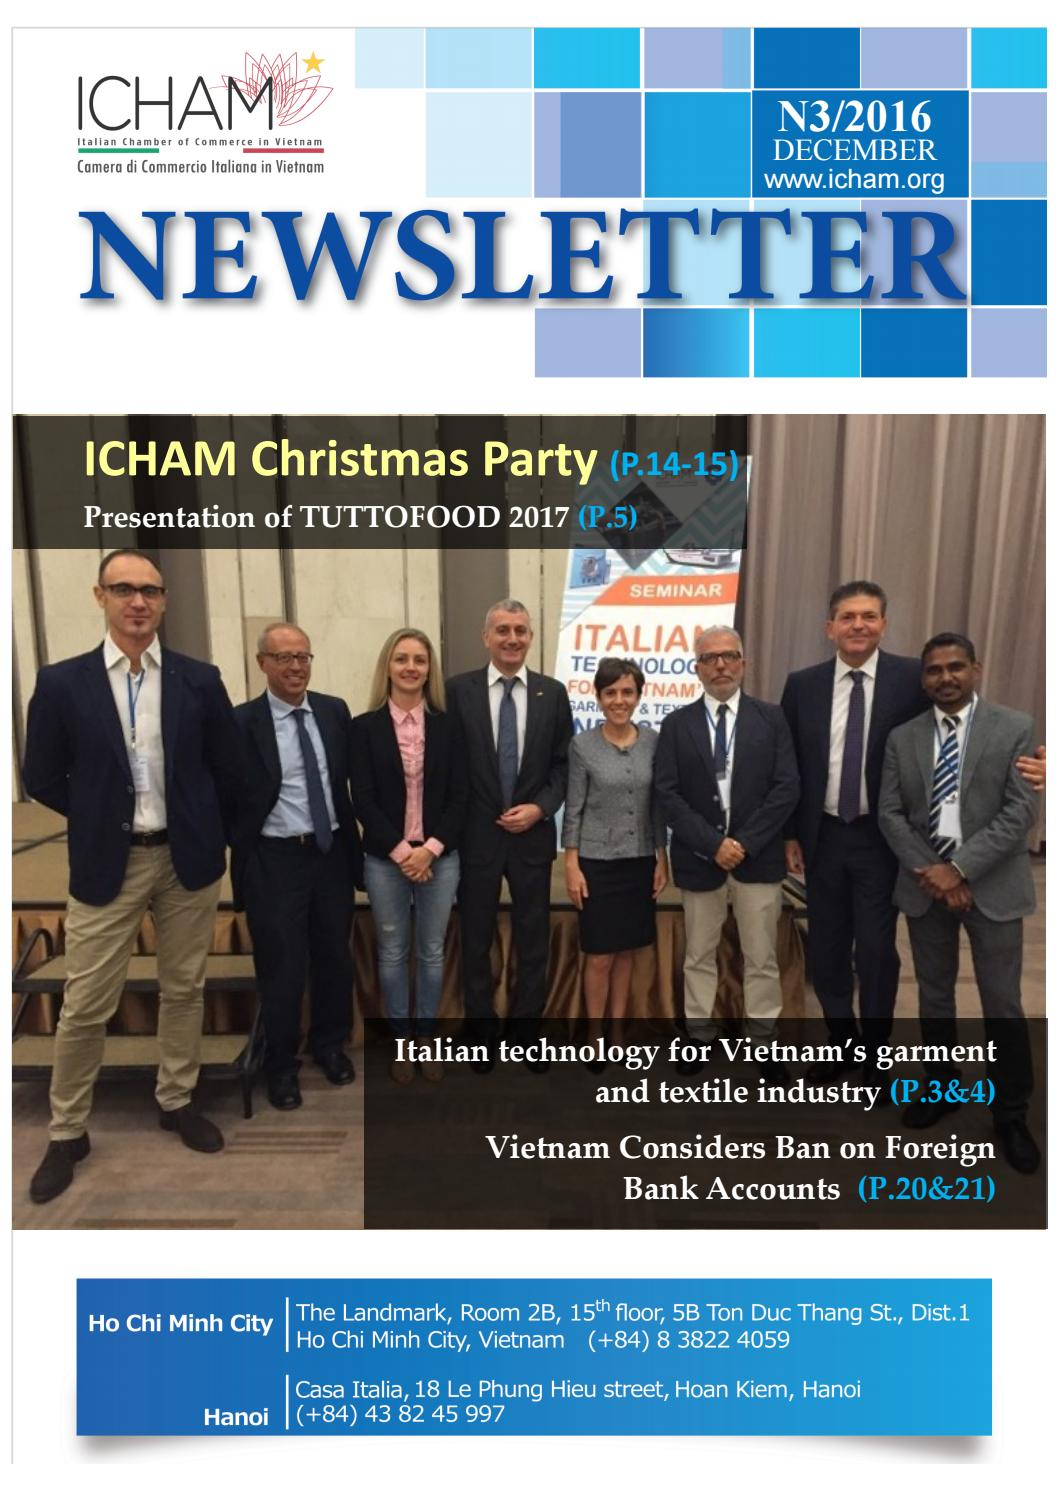 ICHAM - Newsletter N 3/2016 - EN by ICHAM Vietnam - issuu